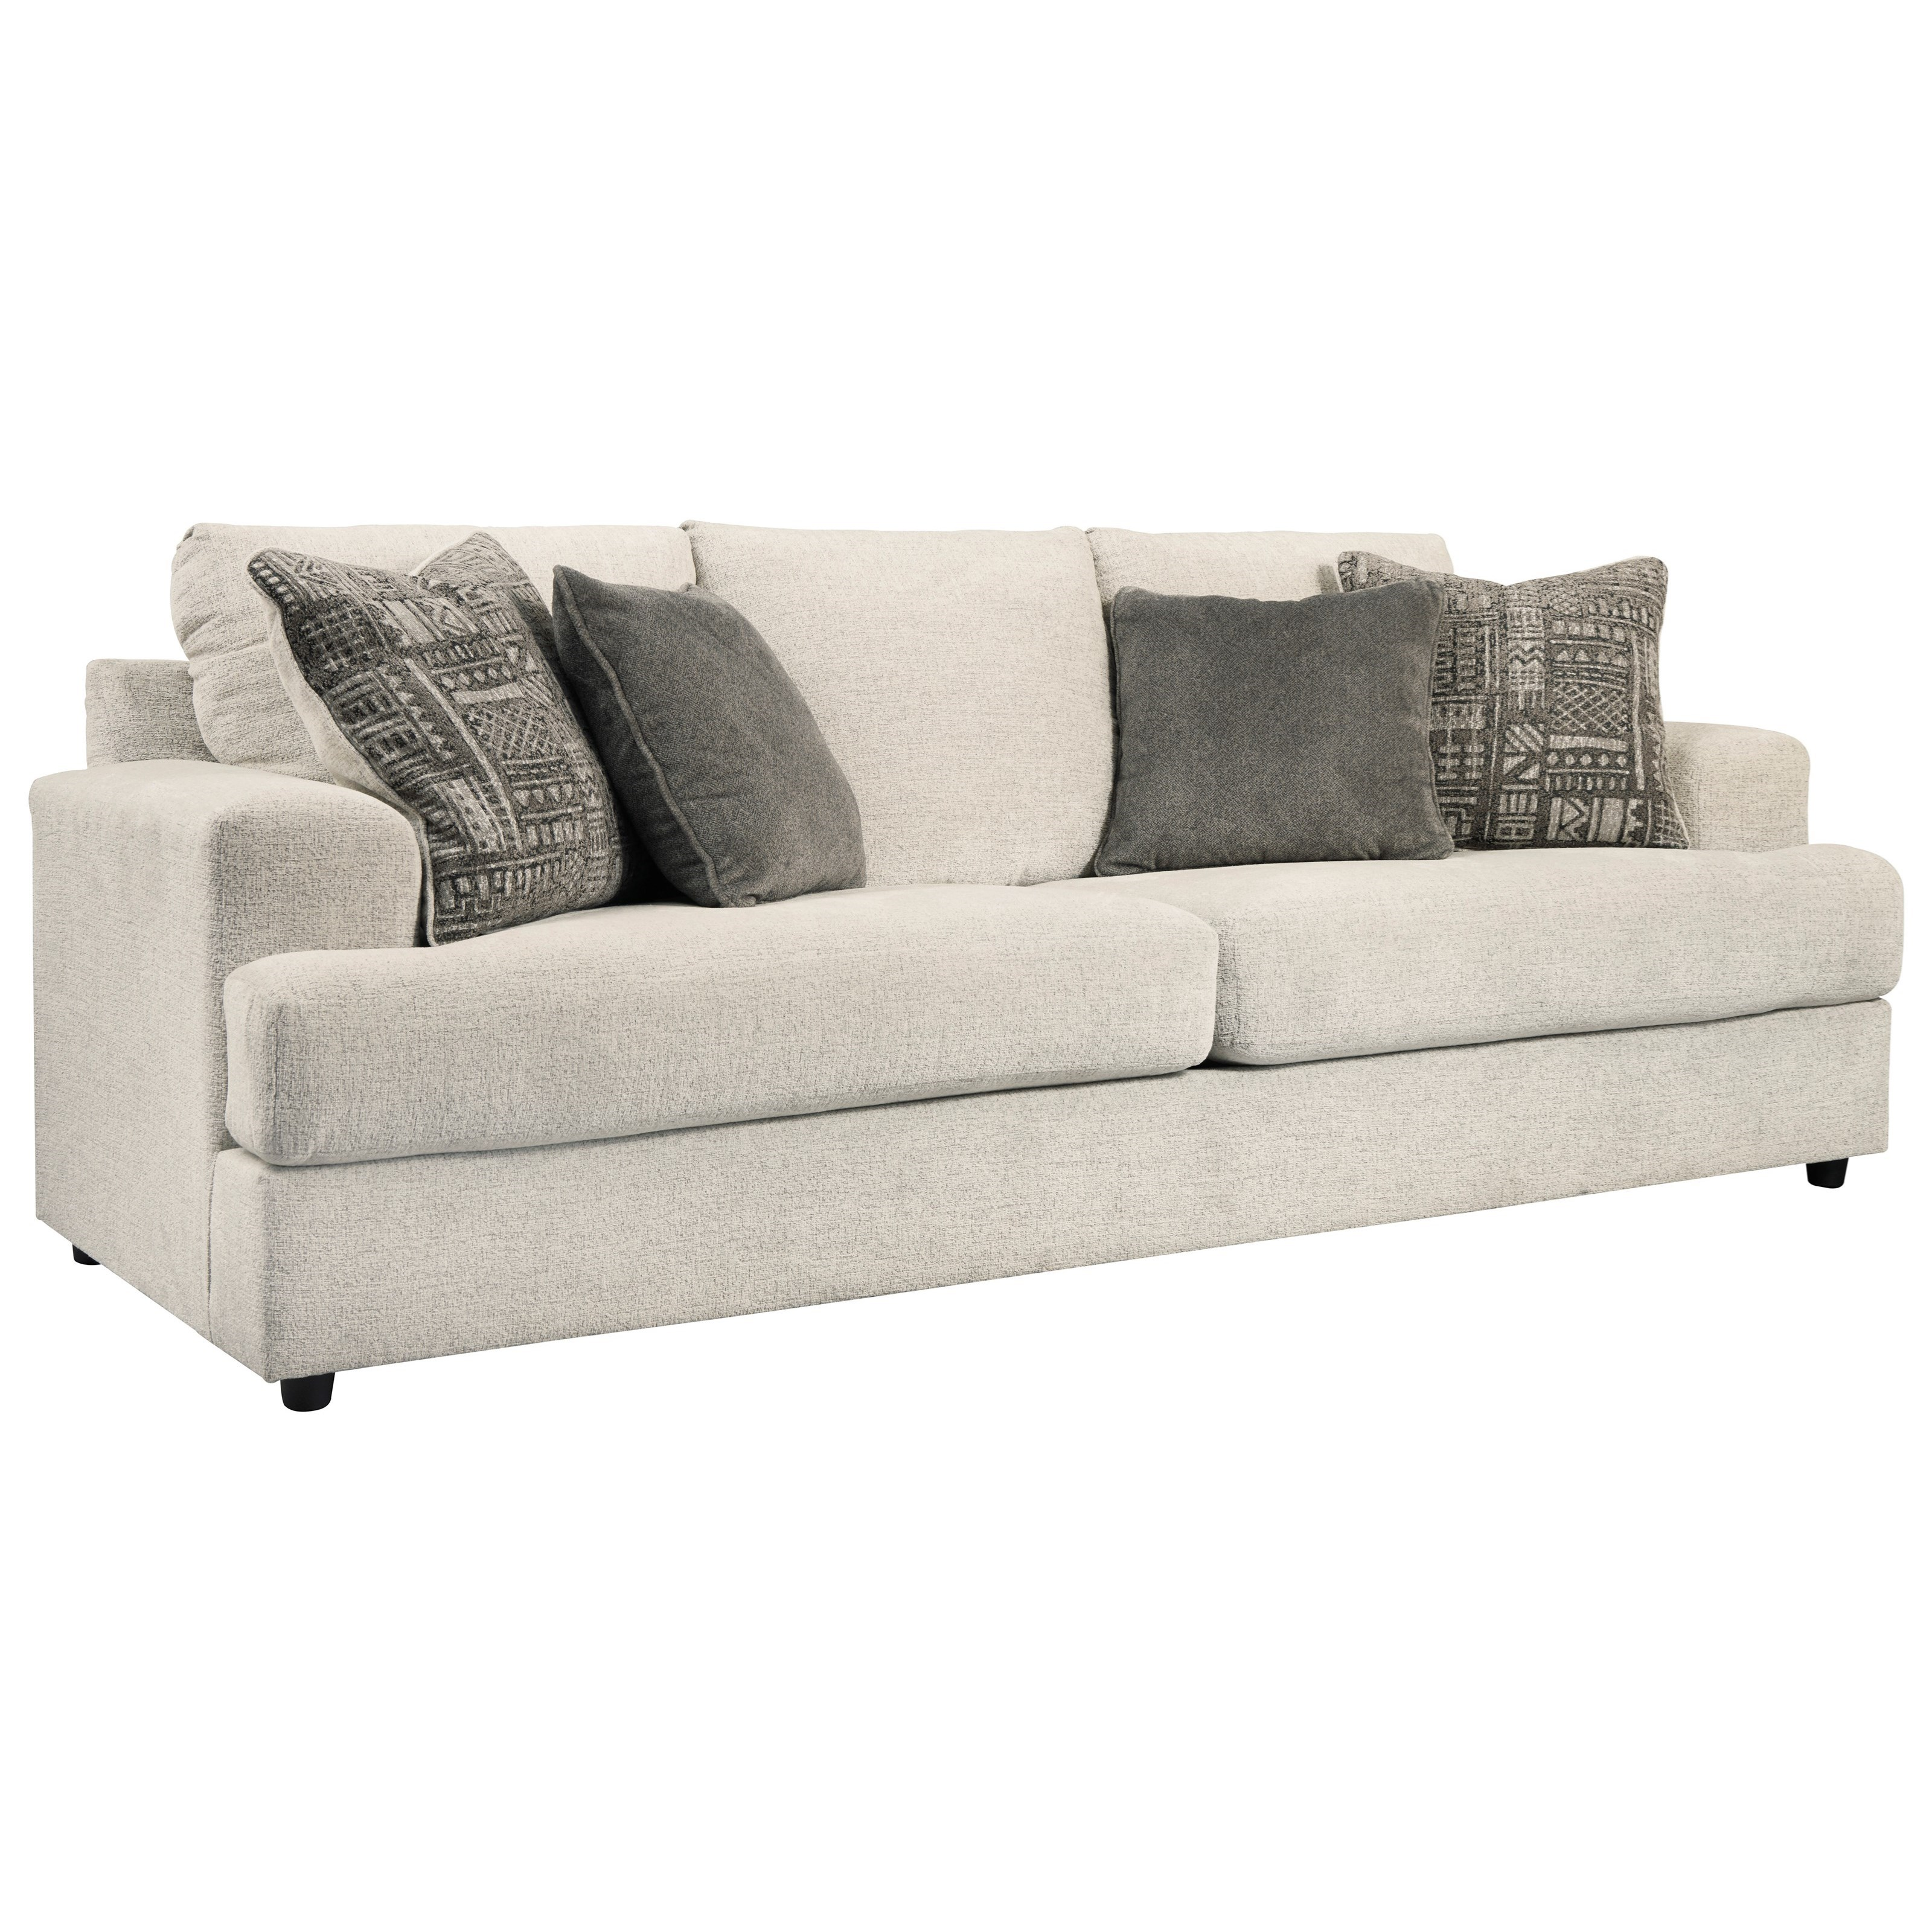 Soletren Queen Sofa Sleeper by Signature Design by Ashley at Suburban Furniture